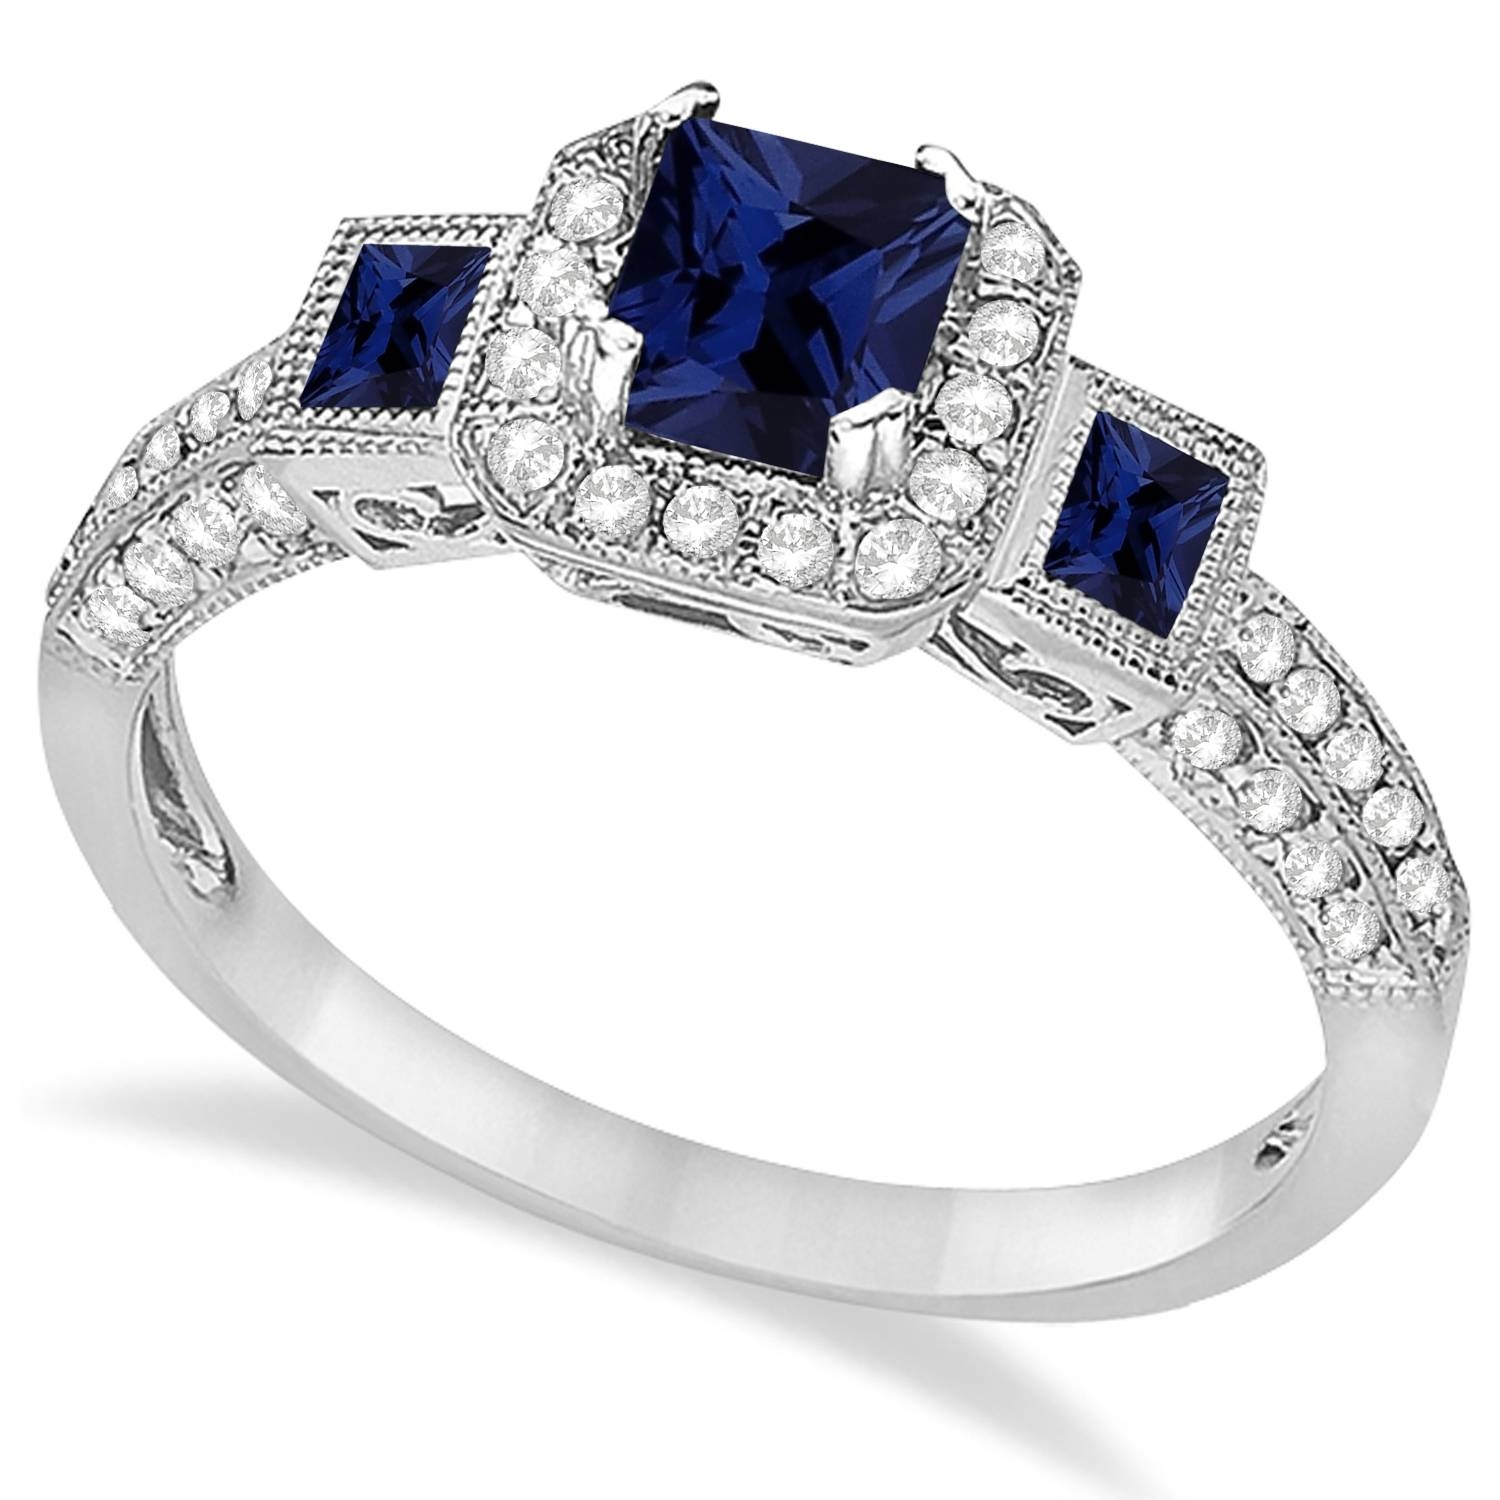 Blue Sapphire & Diamond Engagement Ring 14k White Gold (View 14 of 15)